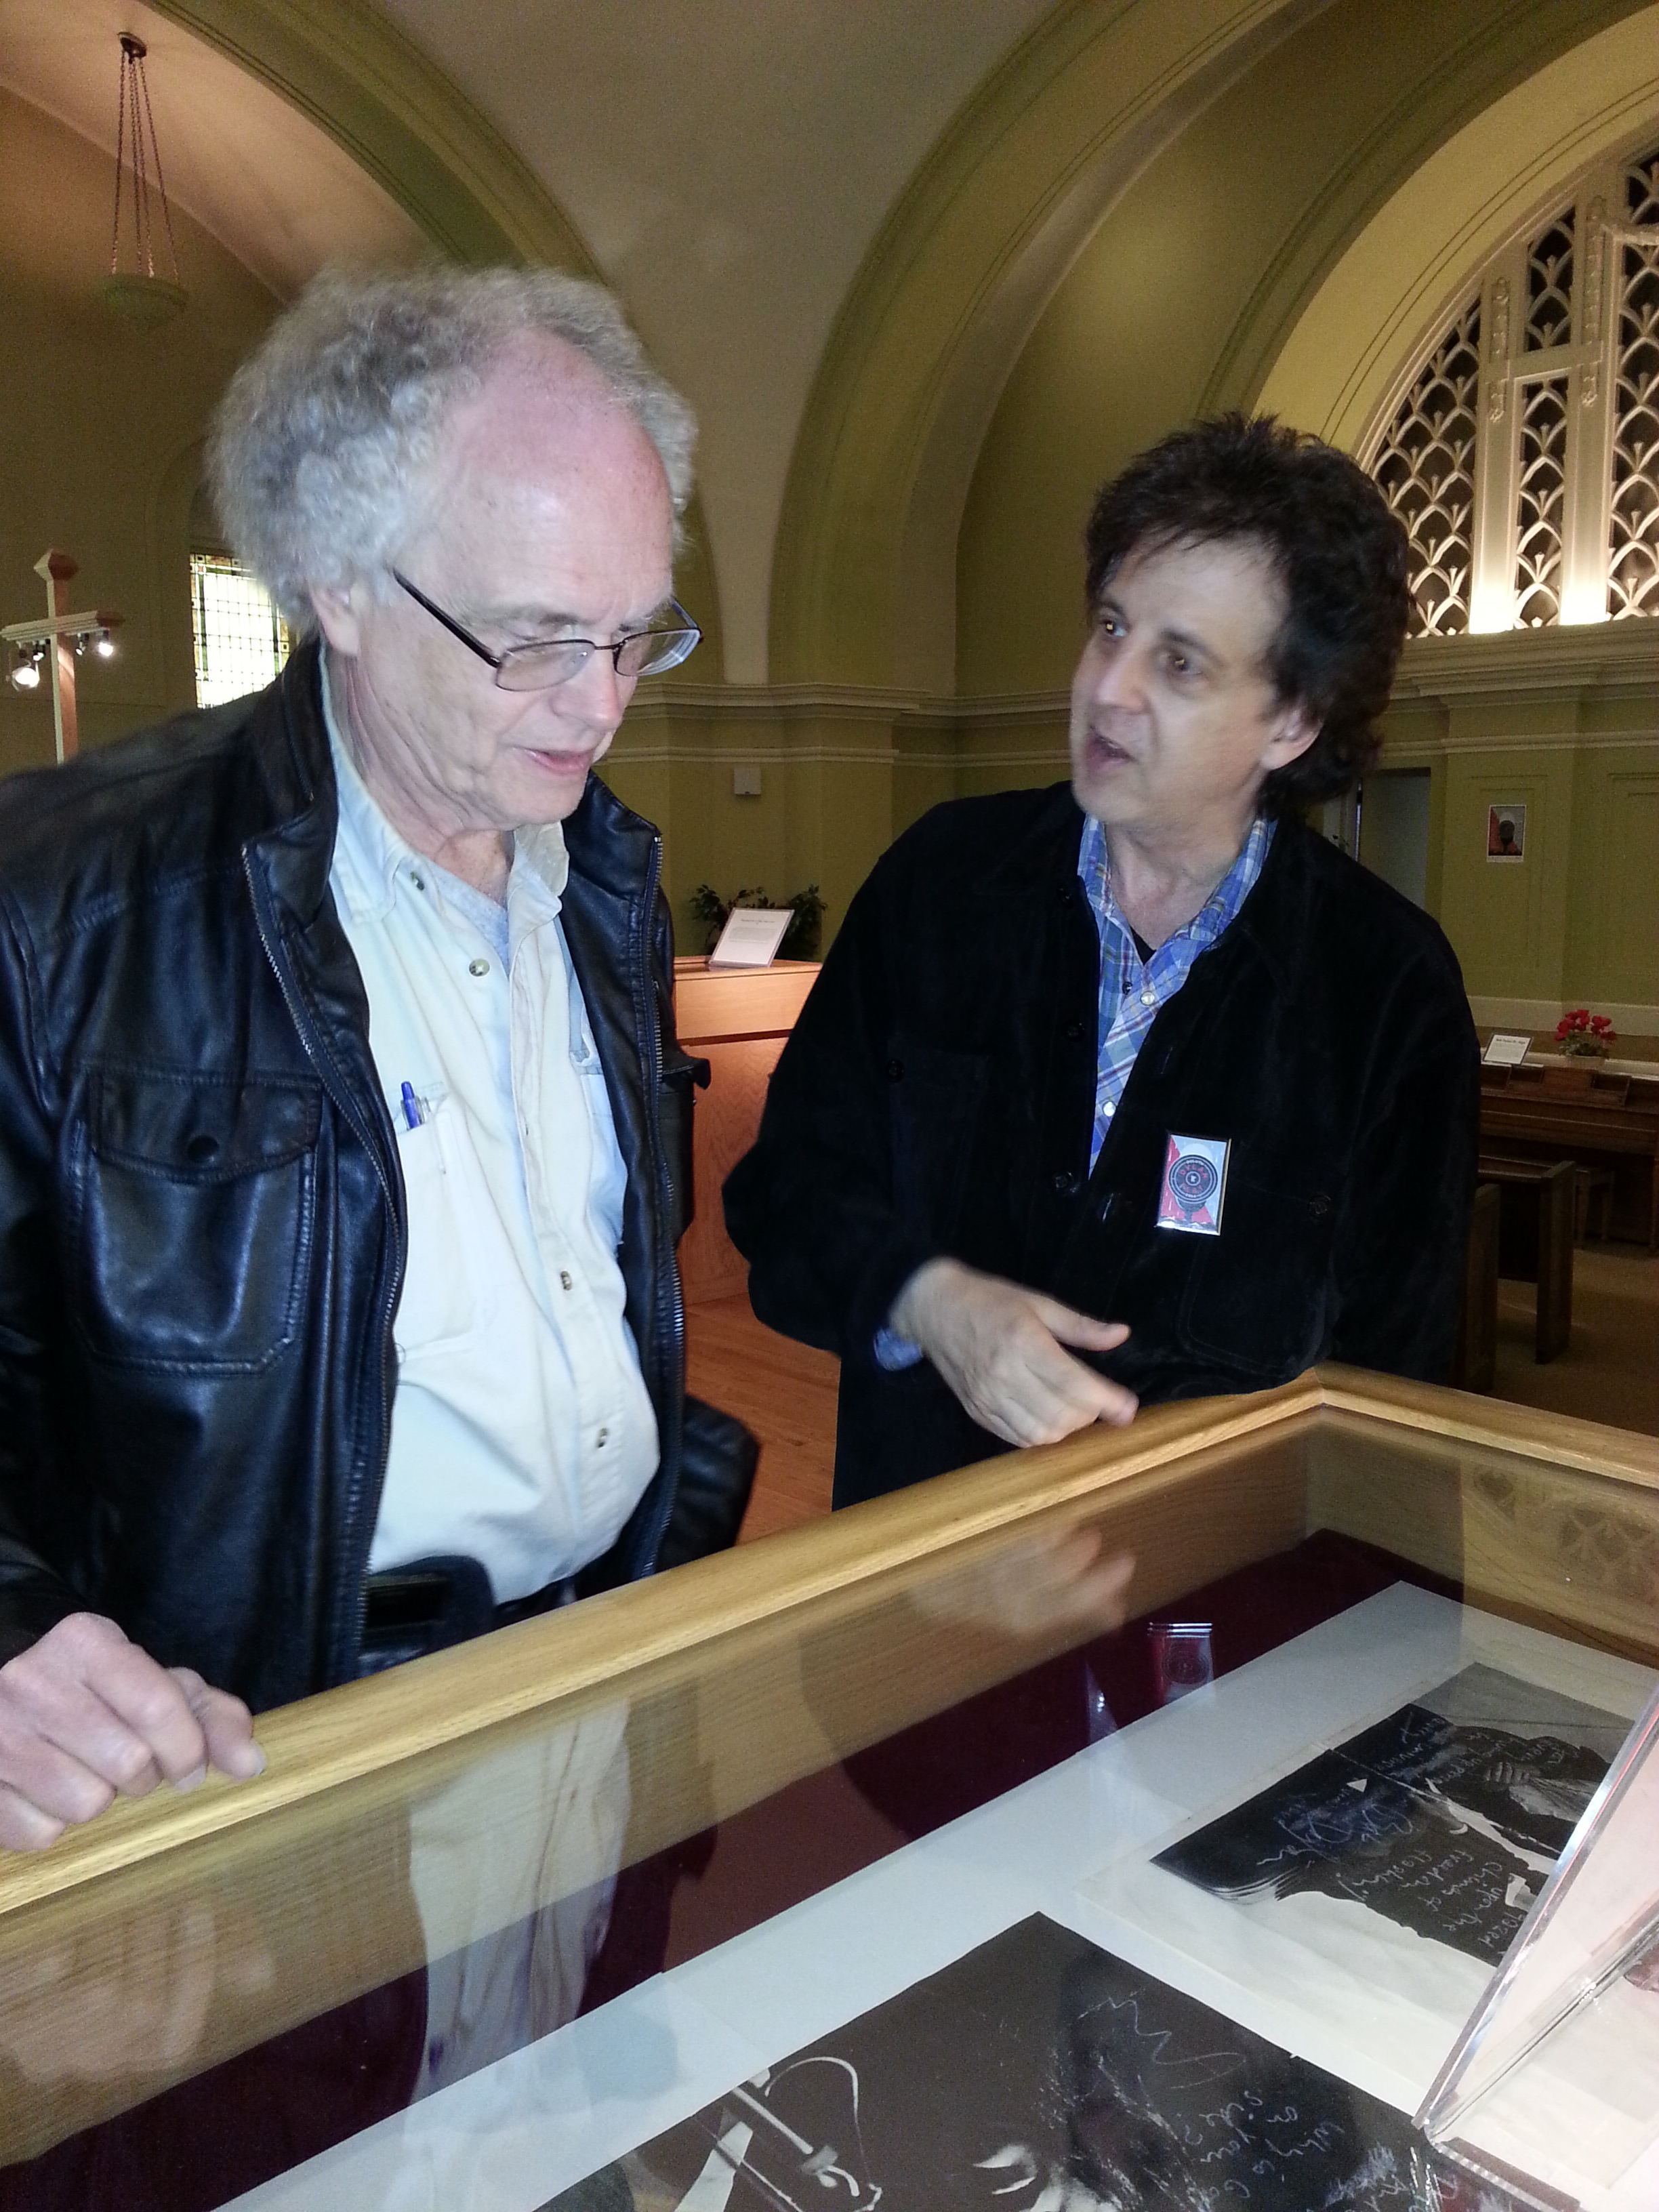 Bob Dylan an Exhibition / Bill Pagel and Magic Marc /  The Karpeles Manuscript Library Museum  / Duluth, Minnesota / May 25th, 2016 / Photo by Kathleen